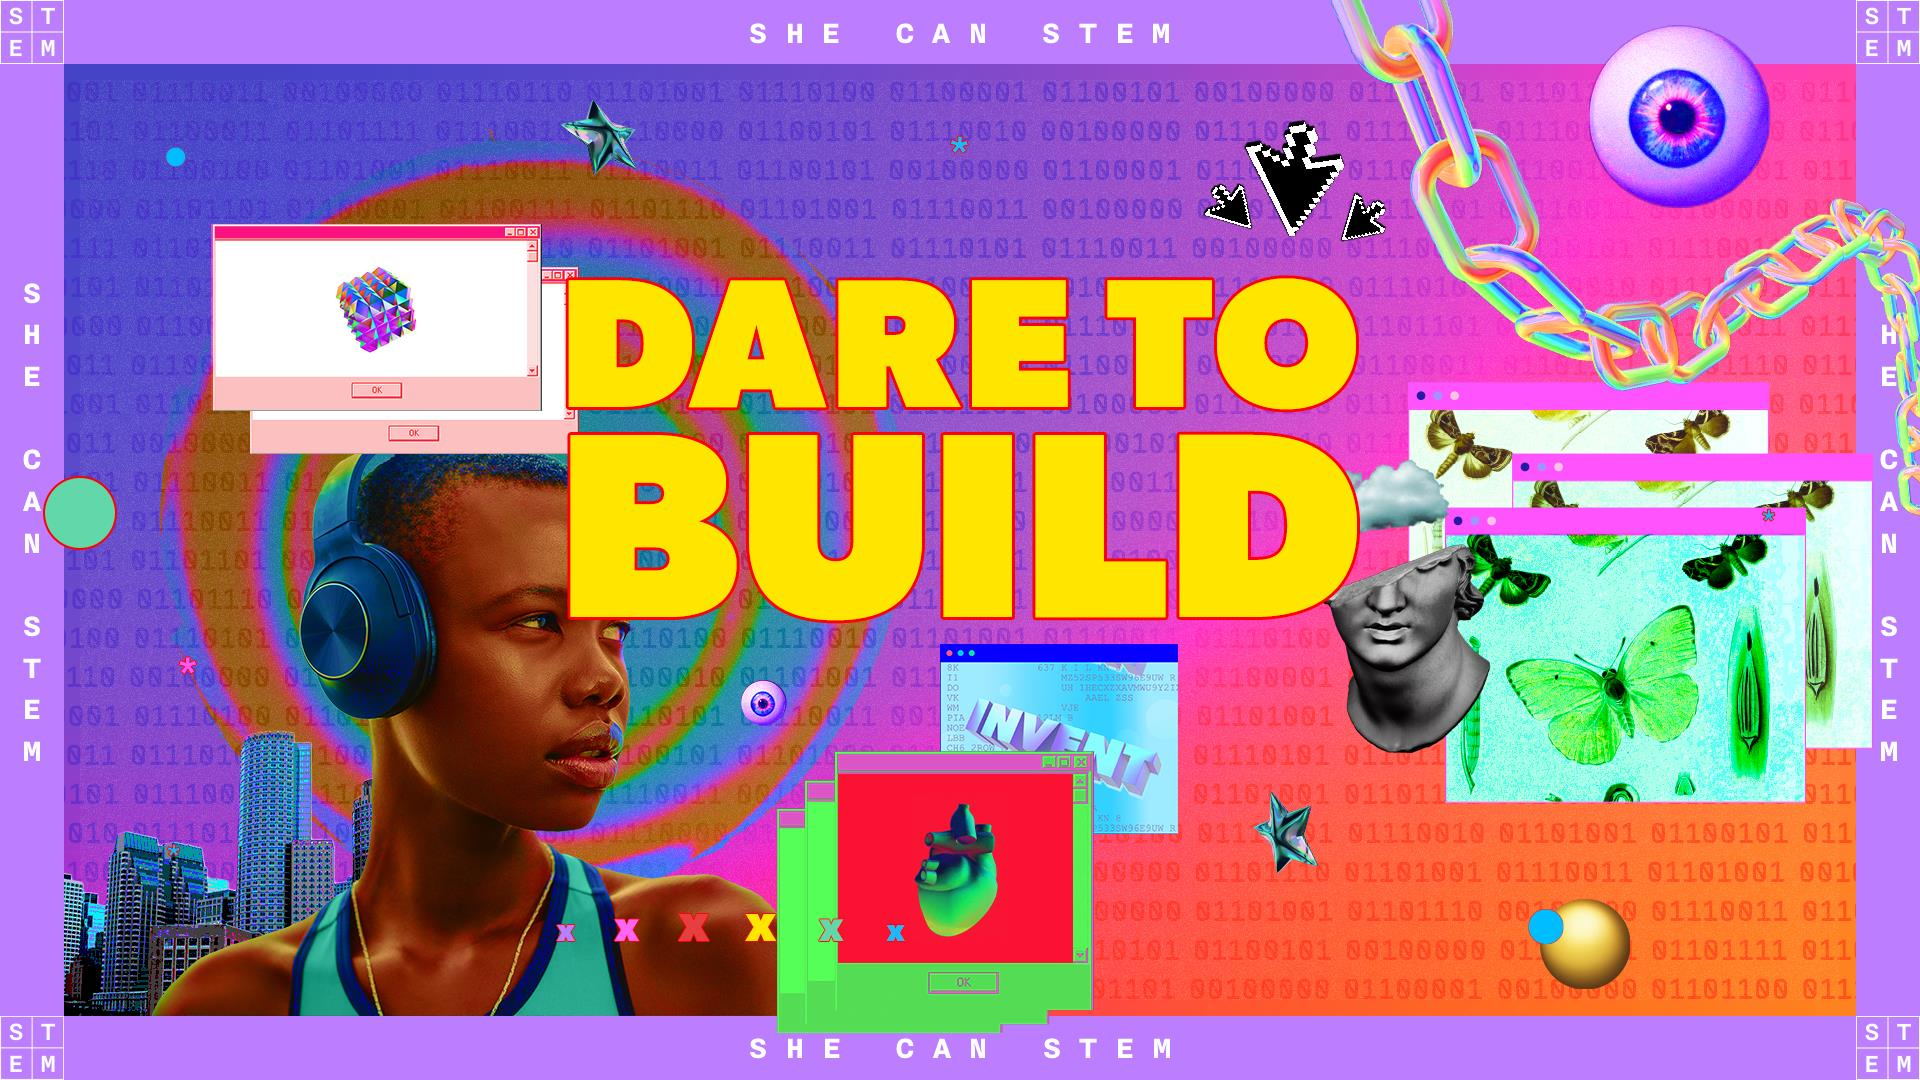 Program Launch & Social Campaign  - Dare To STEM